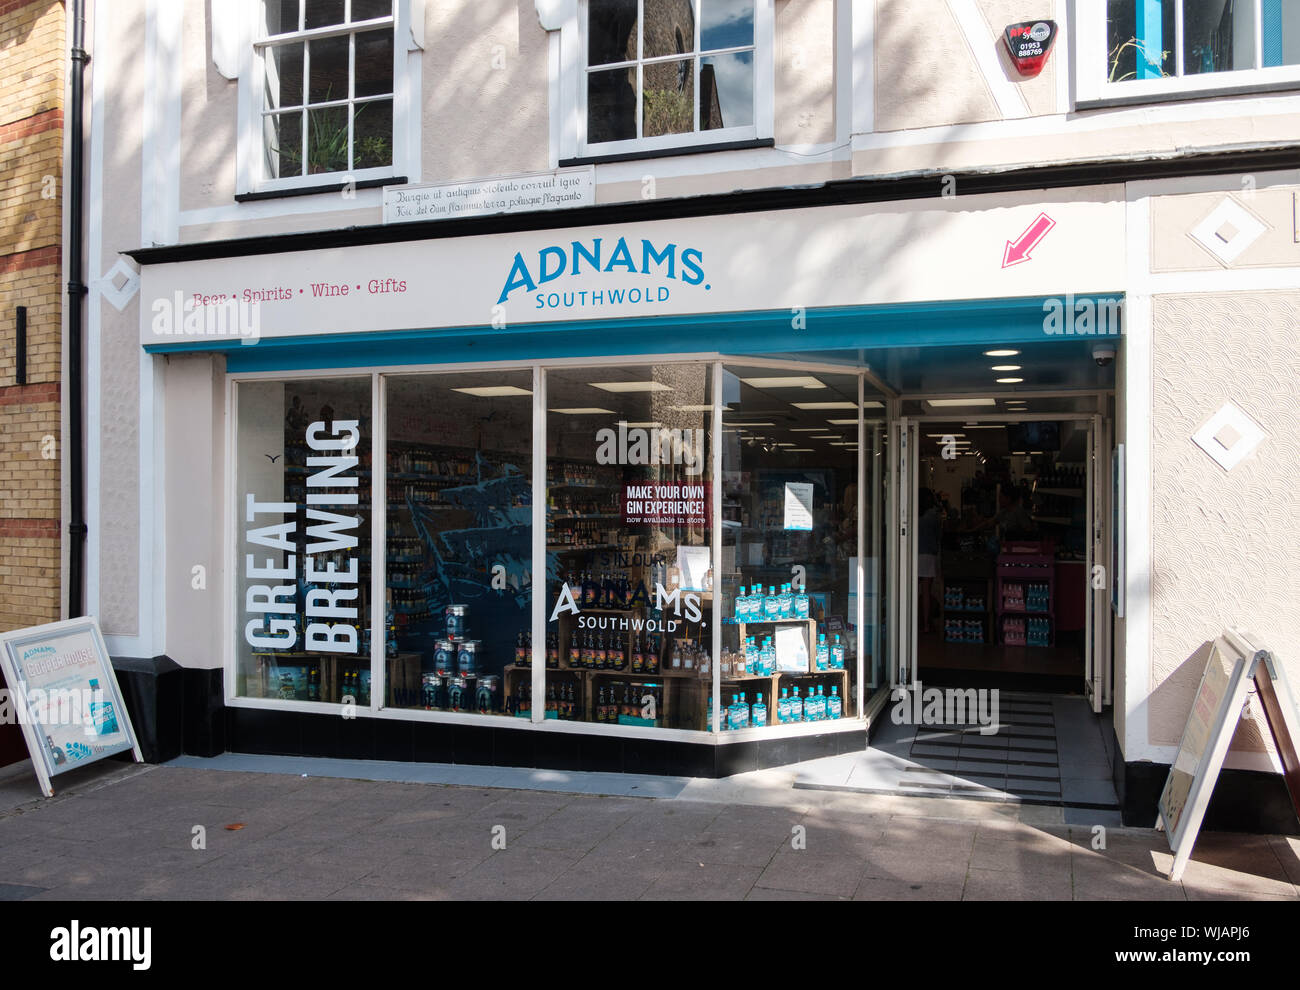 Adnams of Southwold brewery and distillers shop in Bury St Edmunds, Suffolk, UK Stock Photo